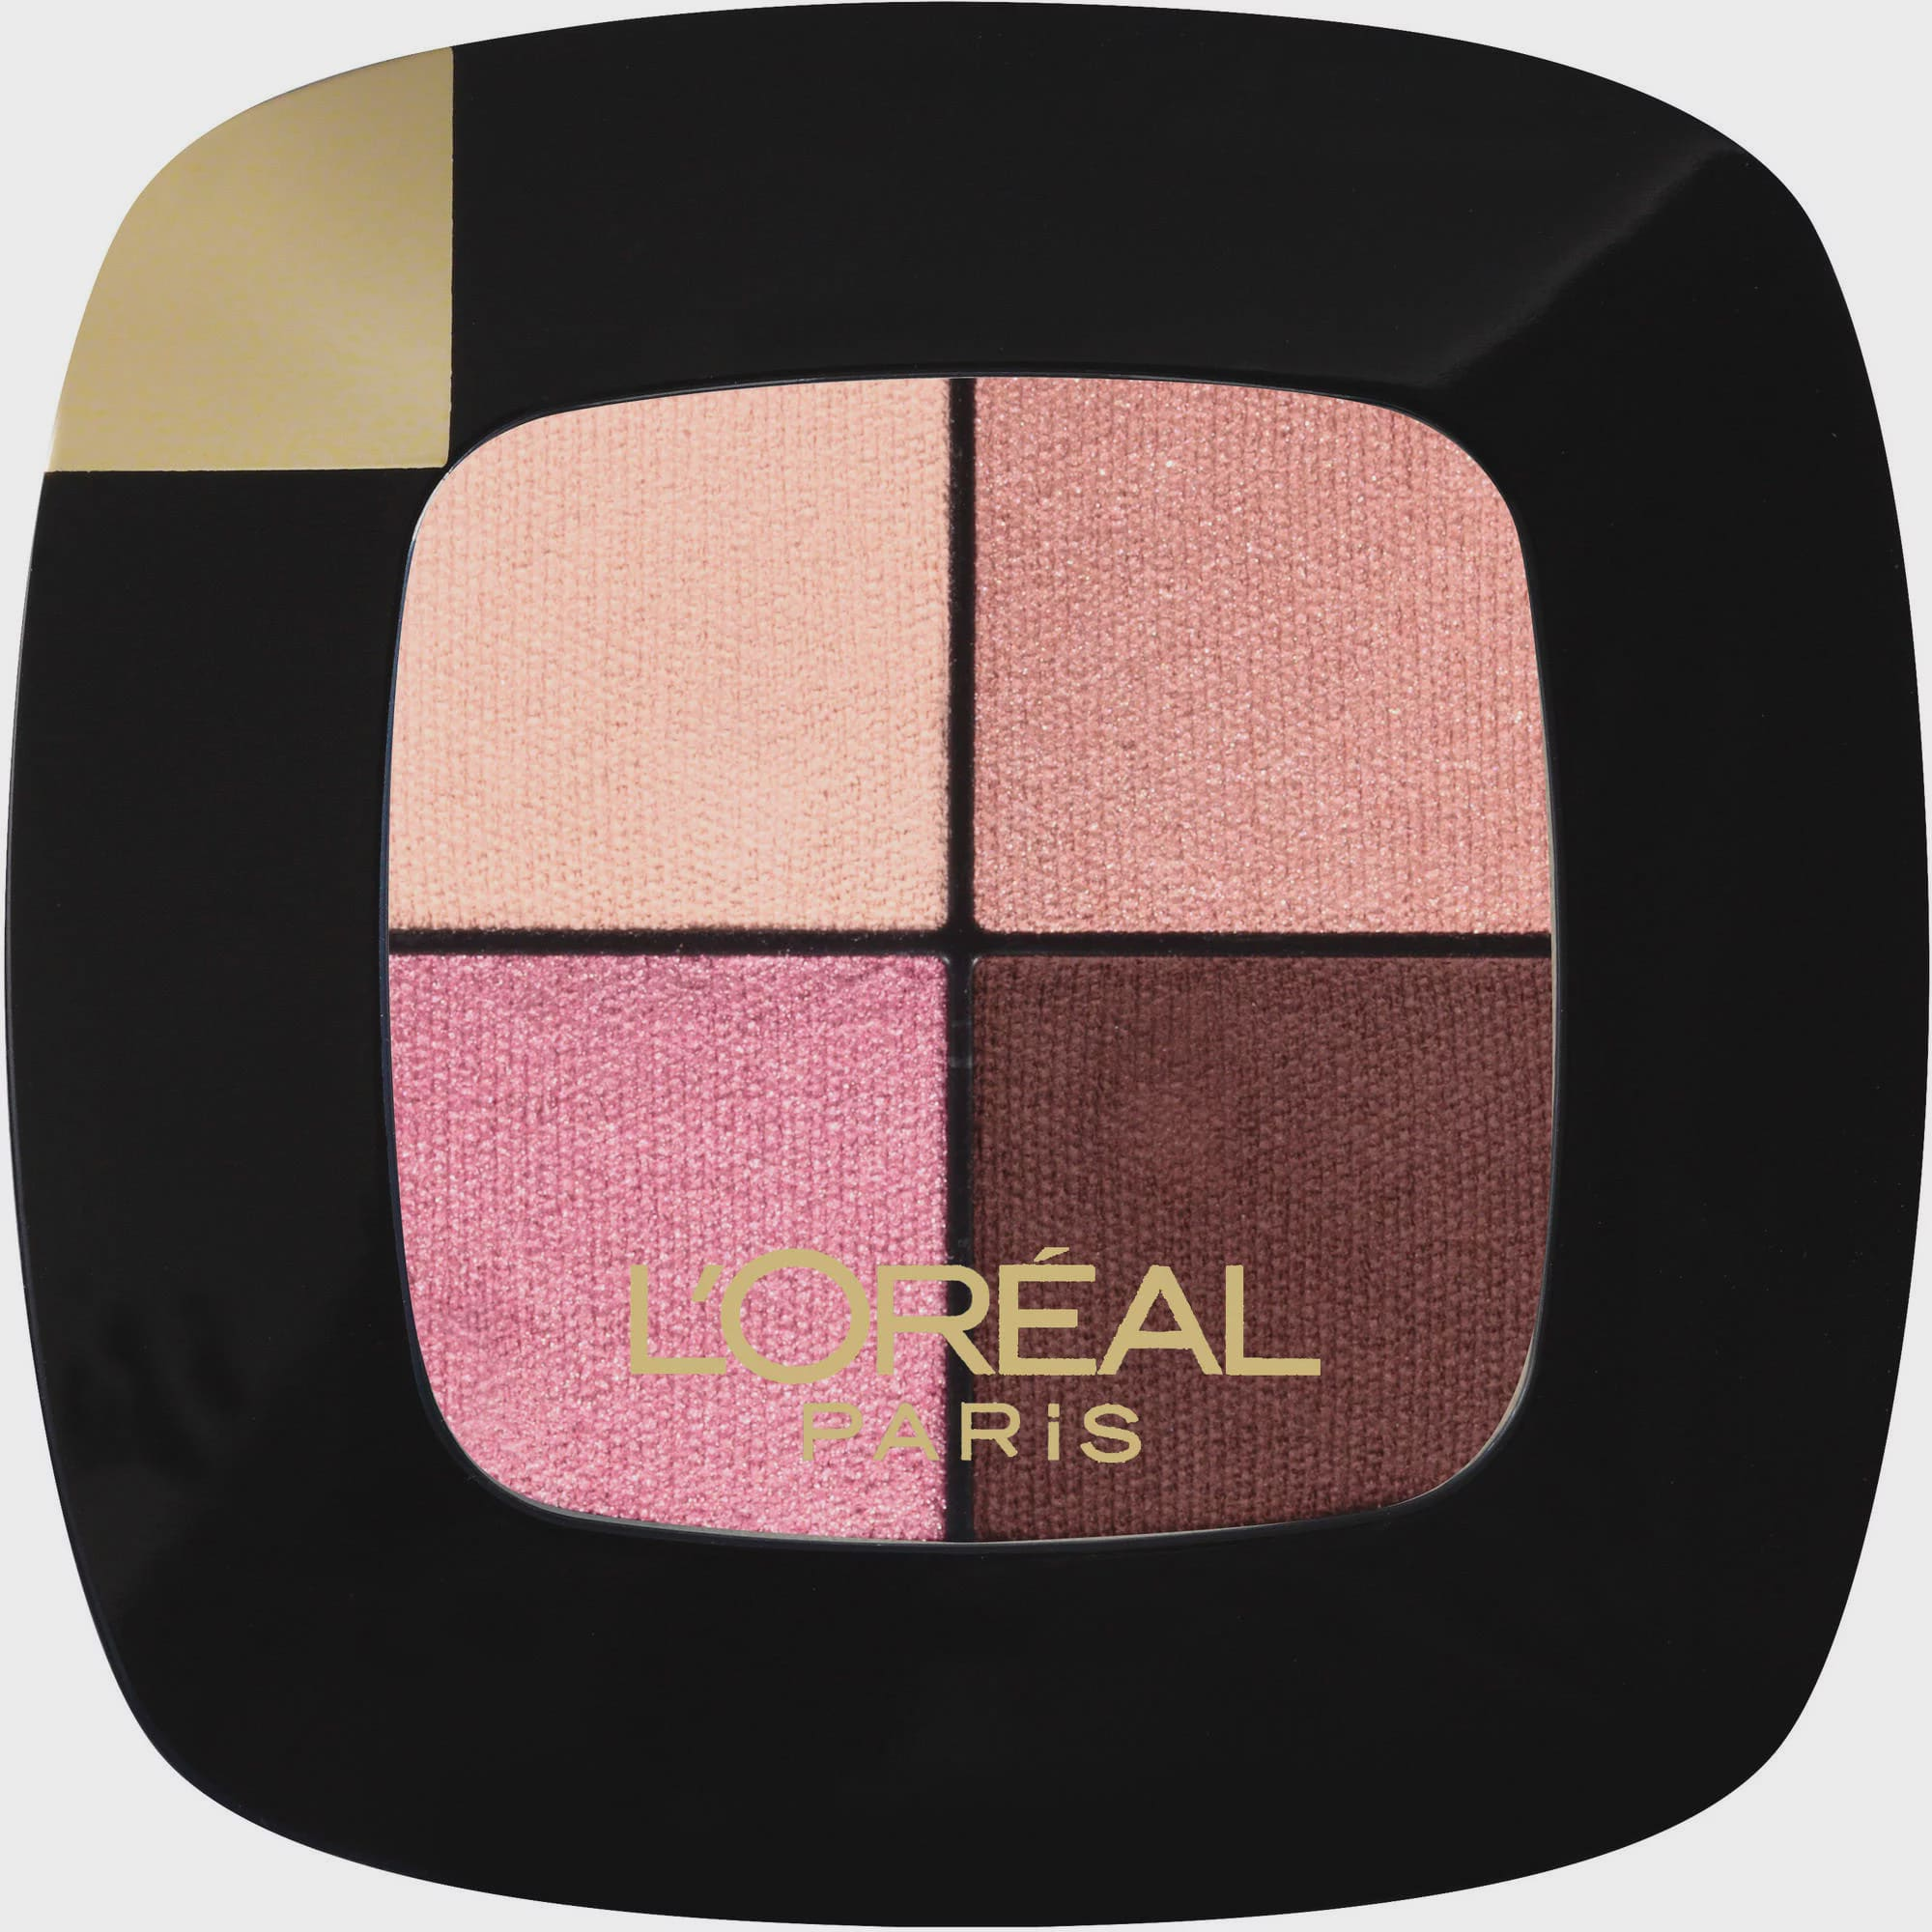 Loreal Paris Colour Riche Eye Pocket Palette Eye Shadow Walmart